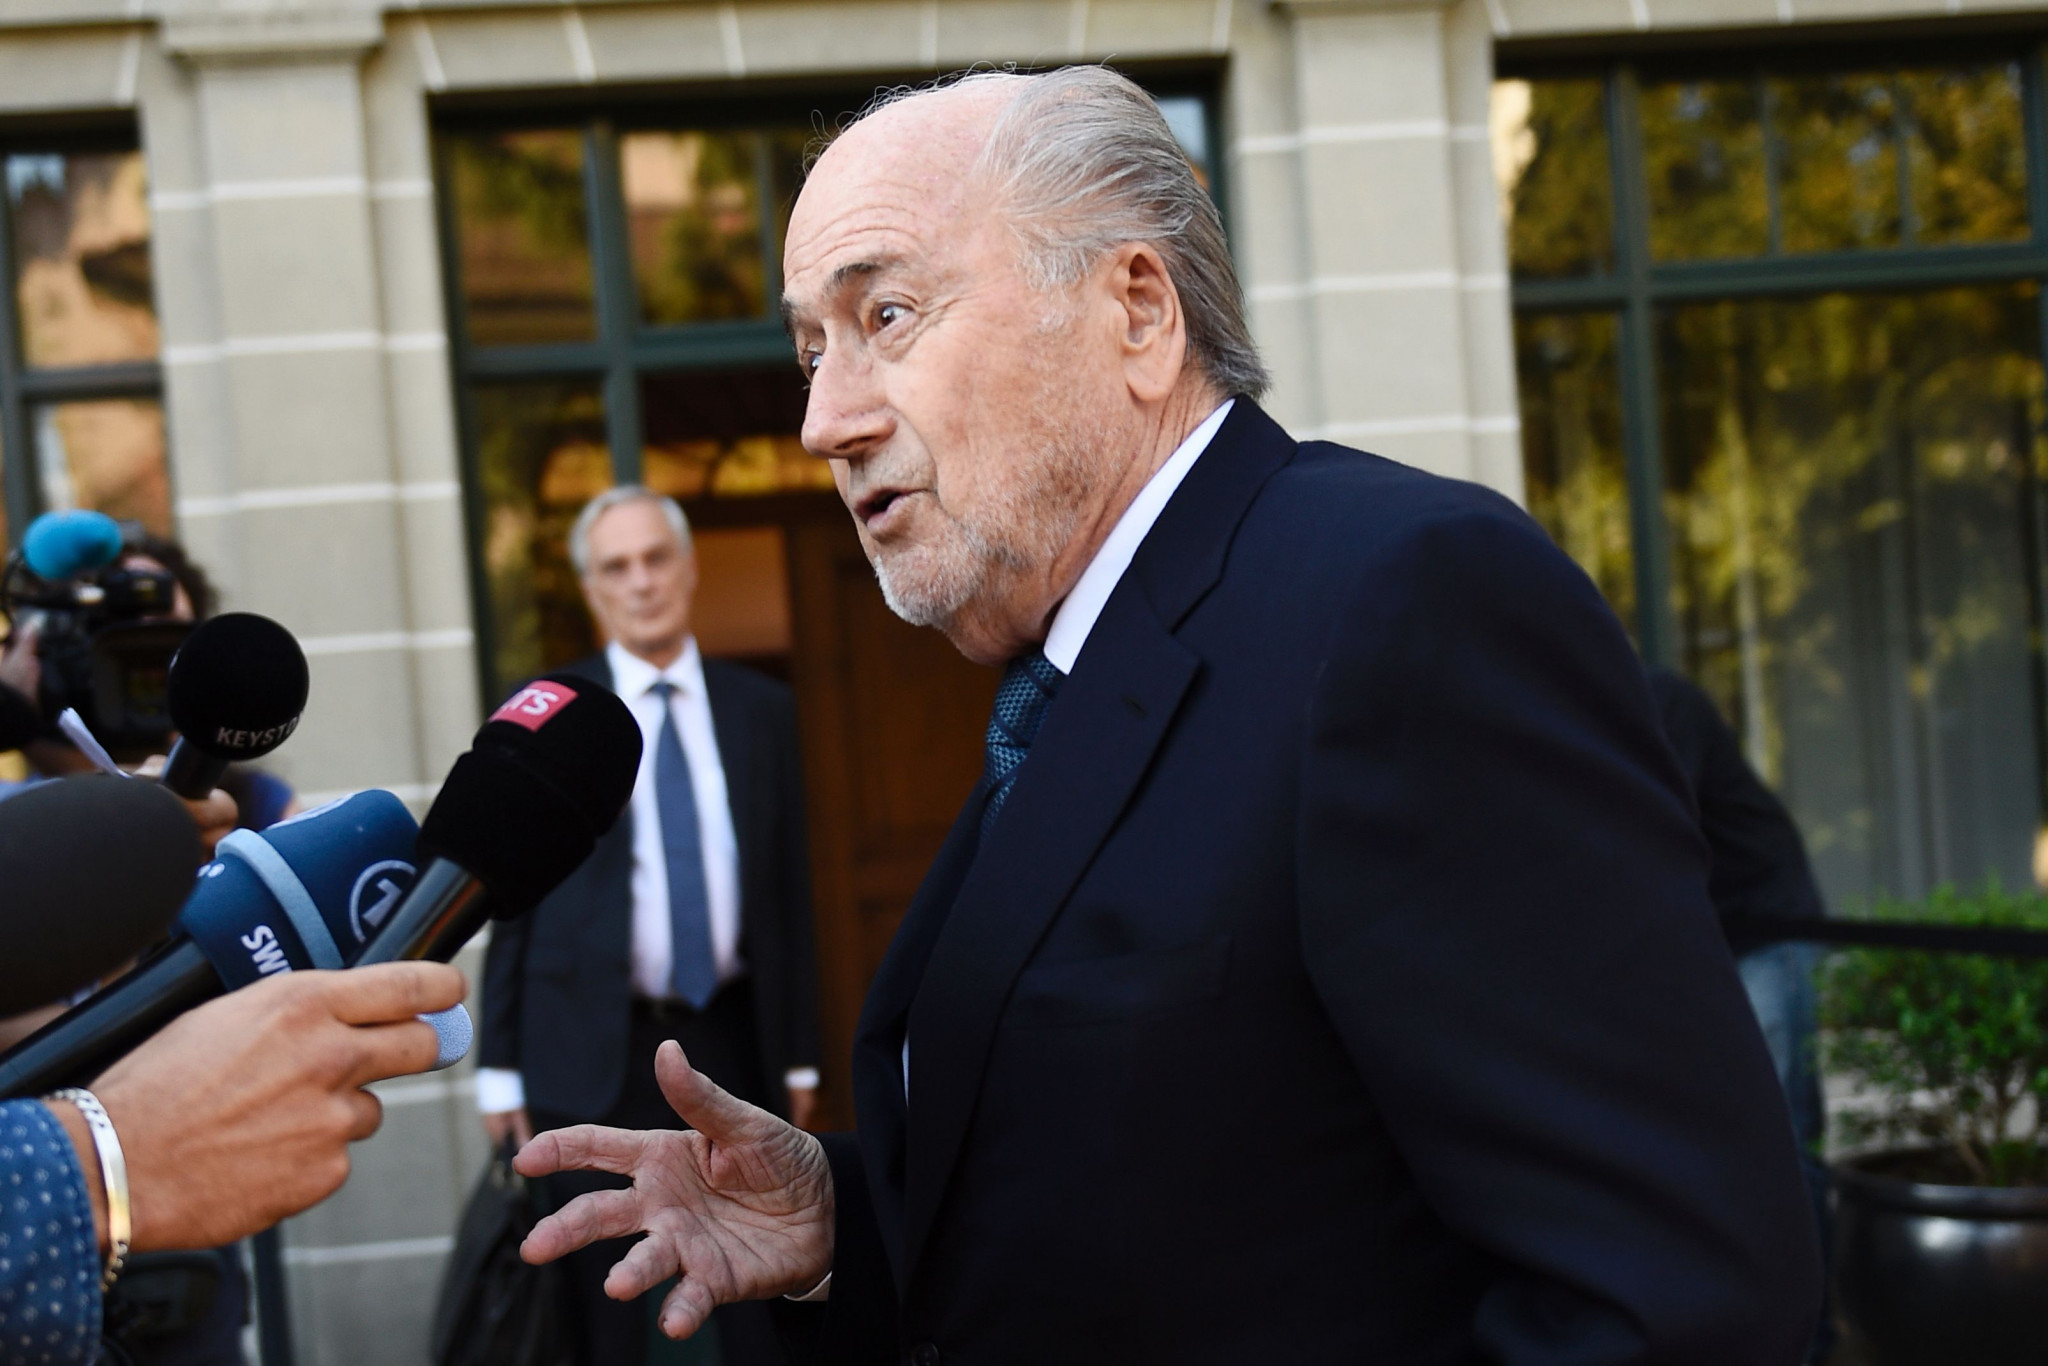 Former President Blatter banned for additional six years by FIFA over financial wrongdoing